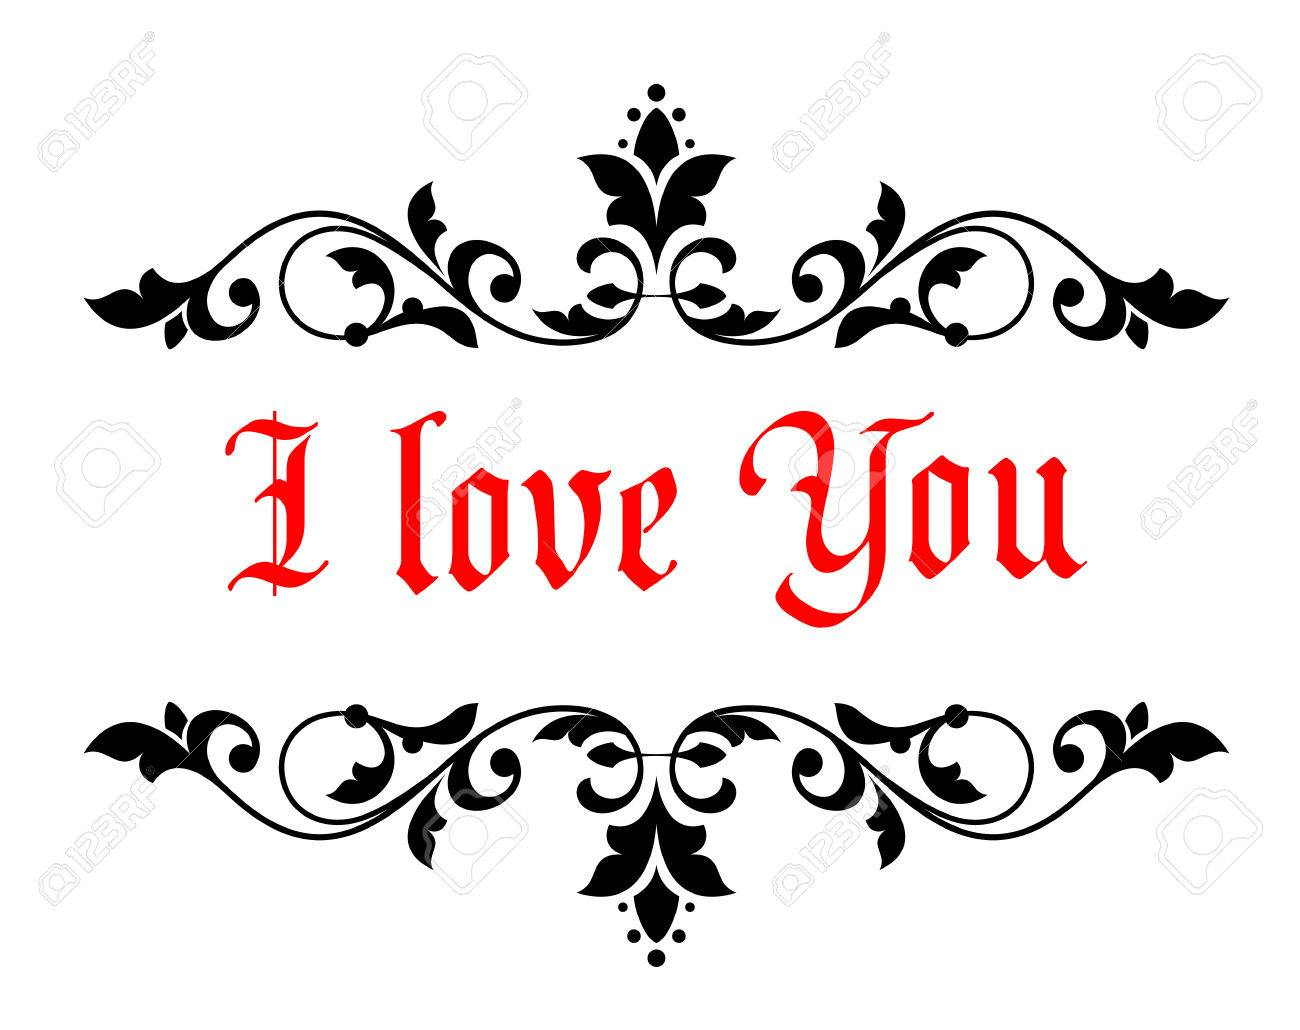 I love you stock photos royalty free business images intricate calligraphic i love you valentines message in a scrolled floral header and footer for a biocorpaavc